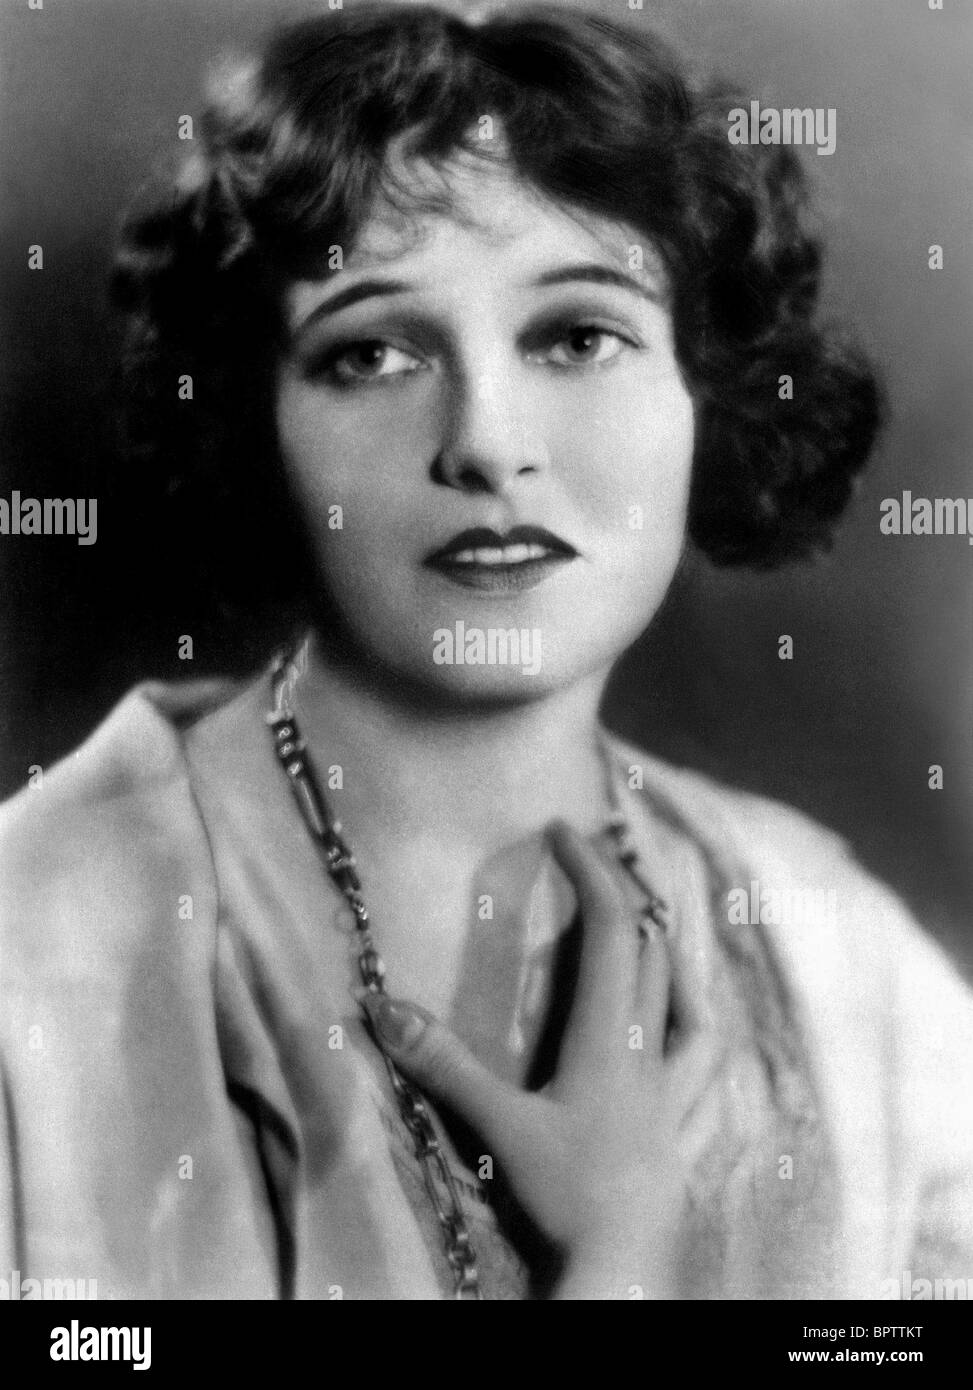 CORINNE GRIFFITH ACTRESS (1928) - Stock Image